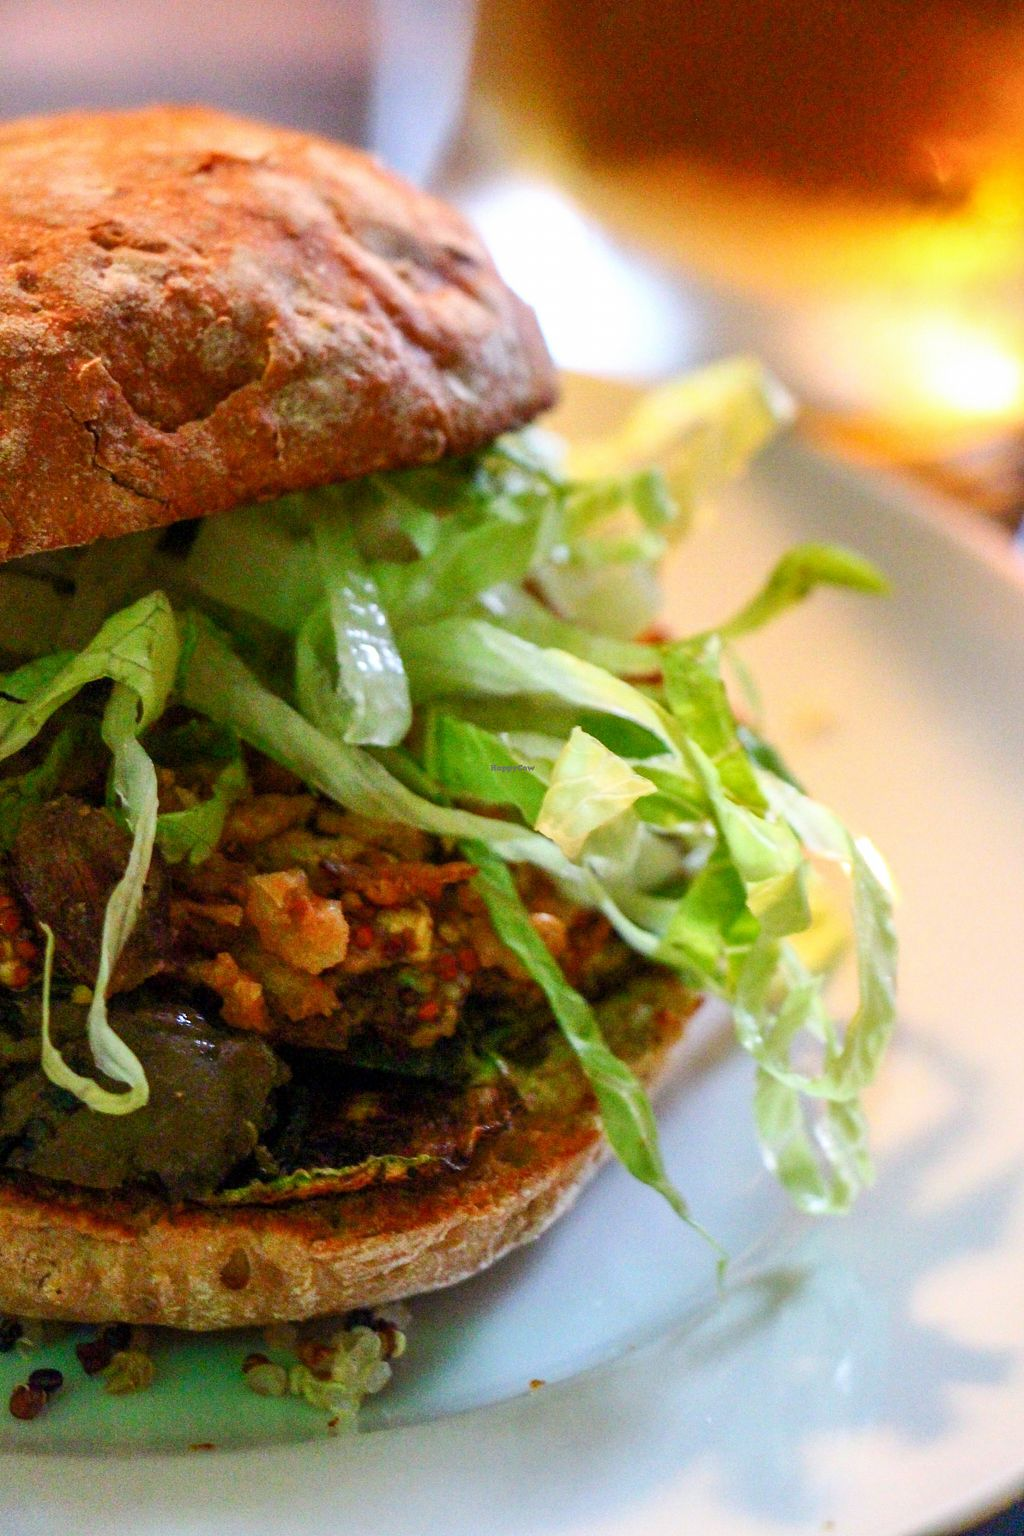 "Photo of The V Factor  by <a href=""/members/profile/Jack%20Karswell"">Jack Karswell</a> <br/>Tasty vegan homemade burger <br/> August 13, 2015  - <a href='/contact/abuse/image/60790/113427'>Report</a>"